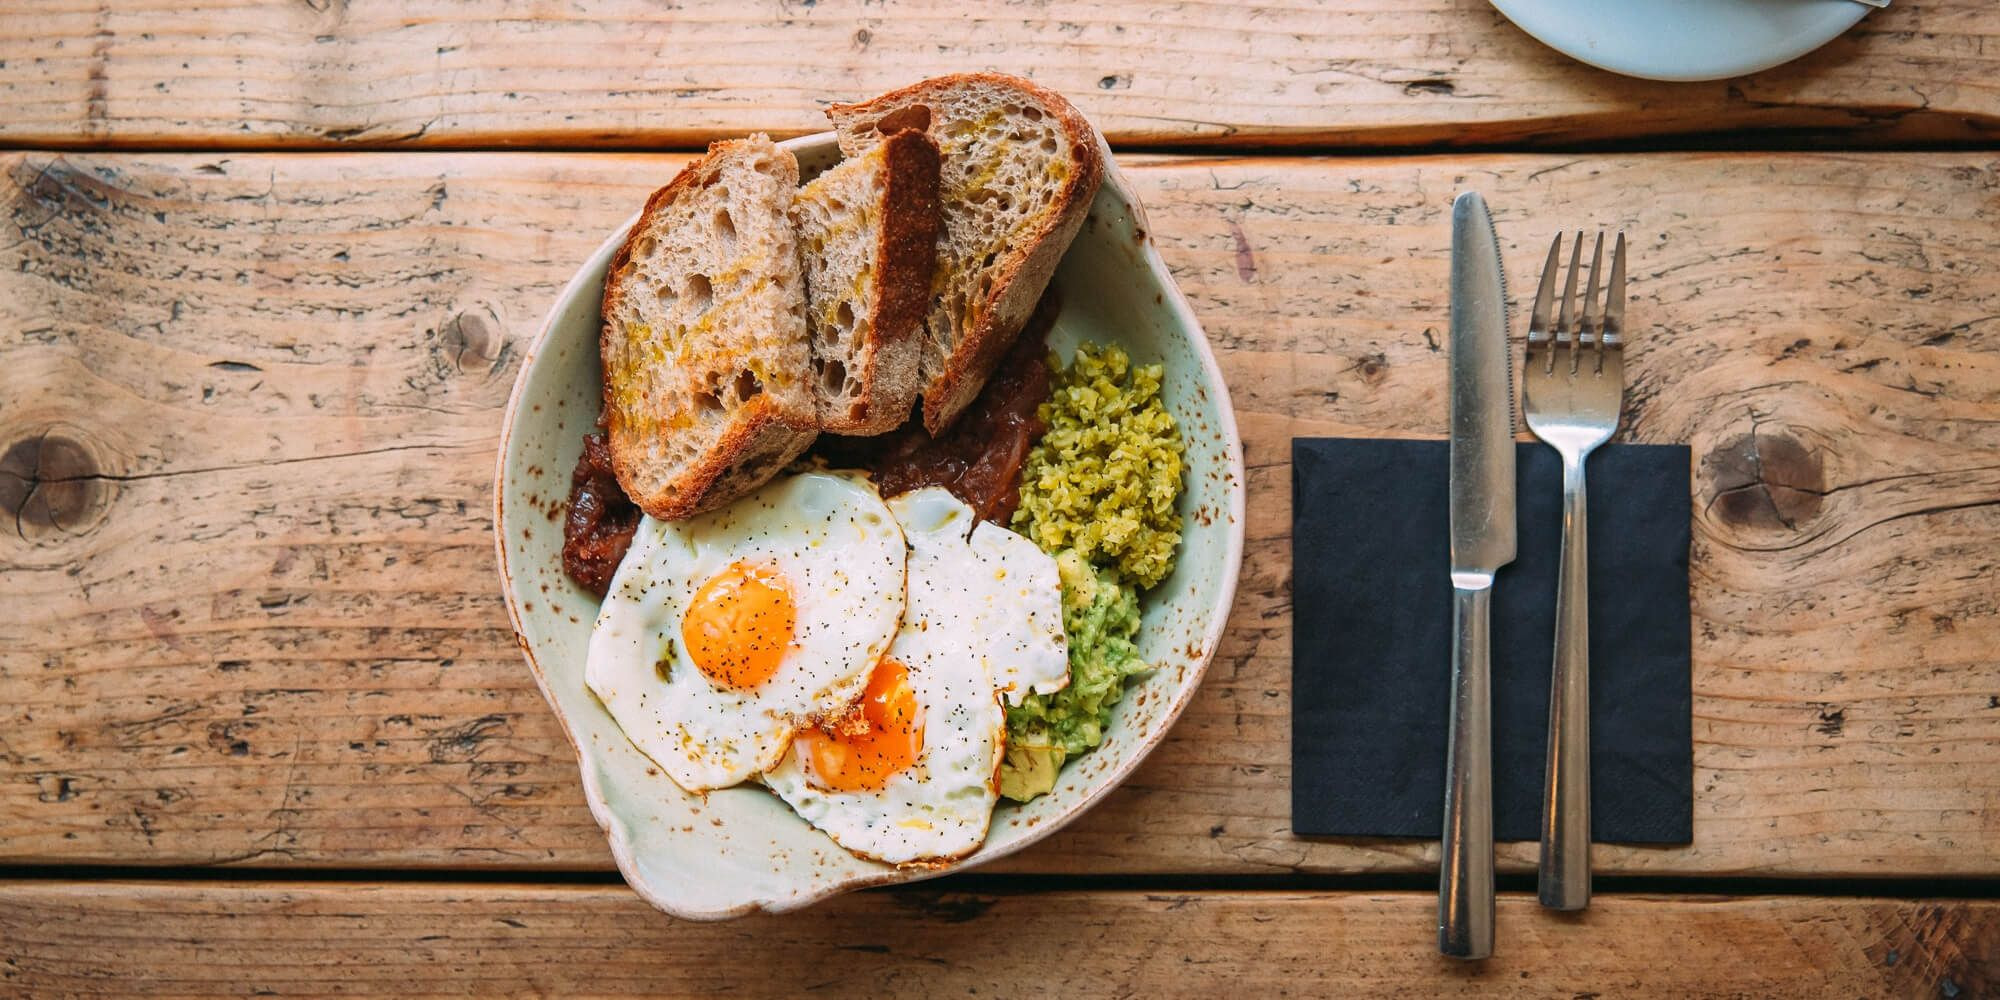 Piquillo peppers & red onion in a home-made sauce, smashed avocado, guindilla relish, 2 fried eggs & toasted sourdough